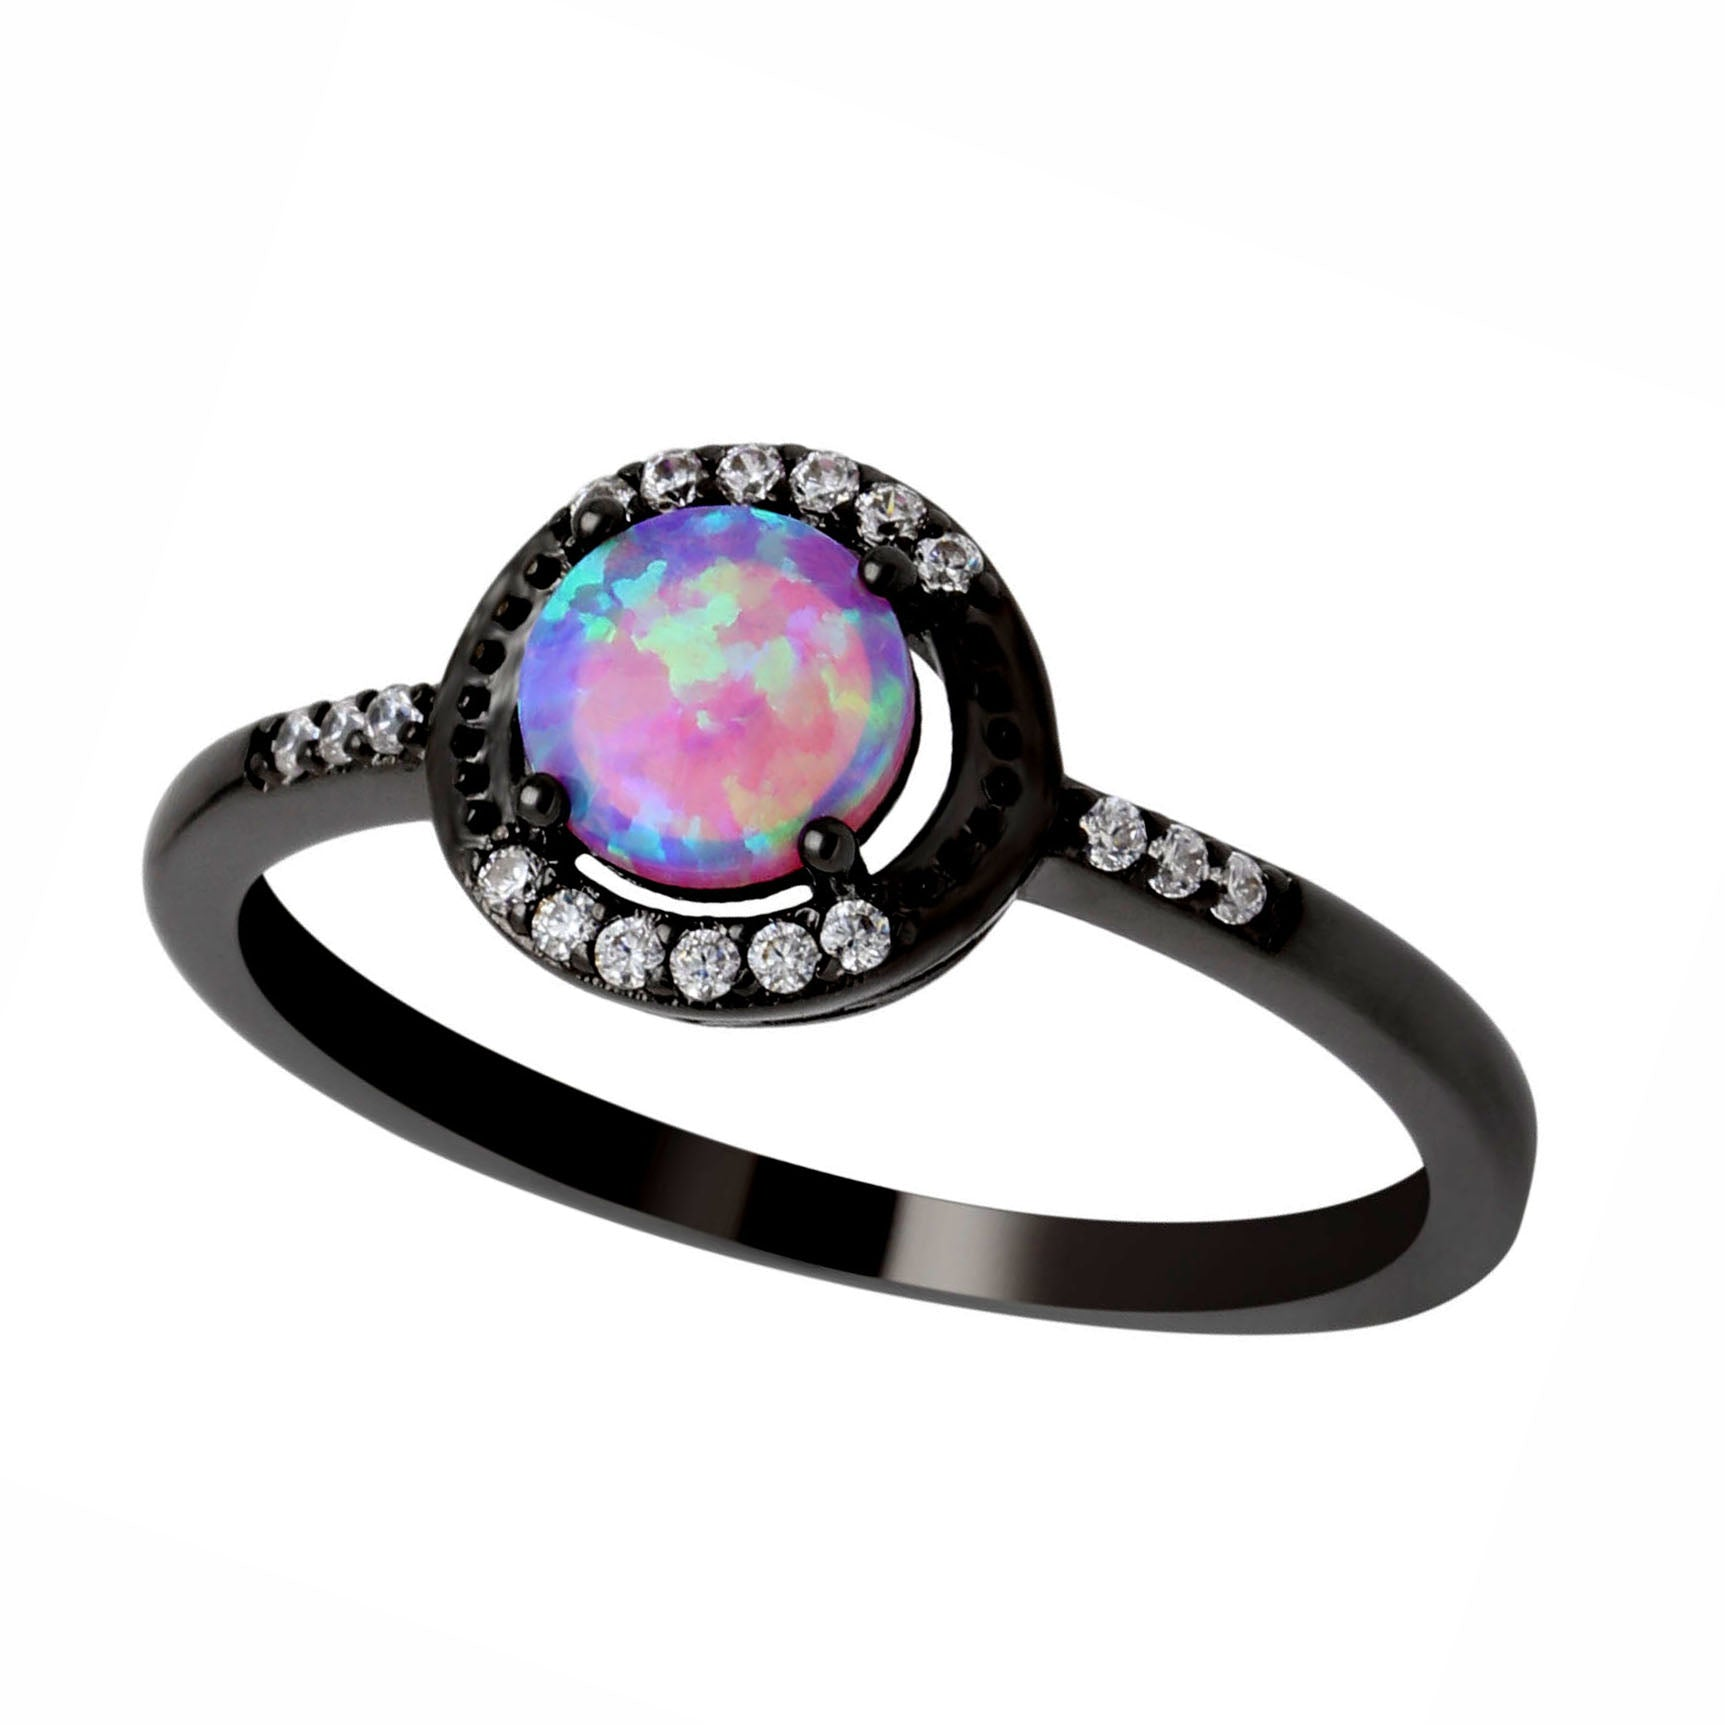 Brynn Black Plated Simulated Fire Opal Ring - Ginger Lyne Collection